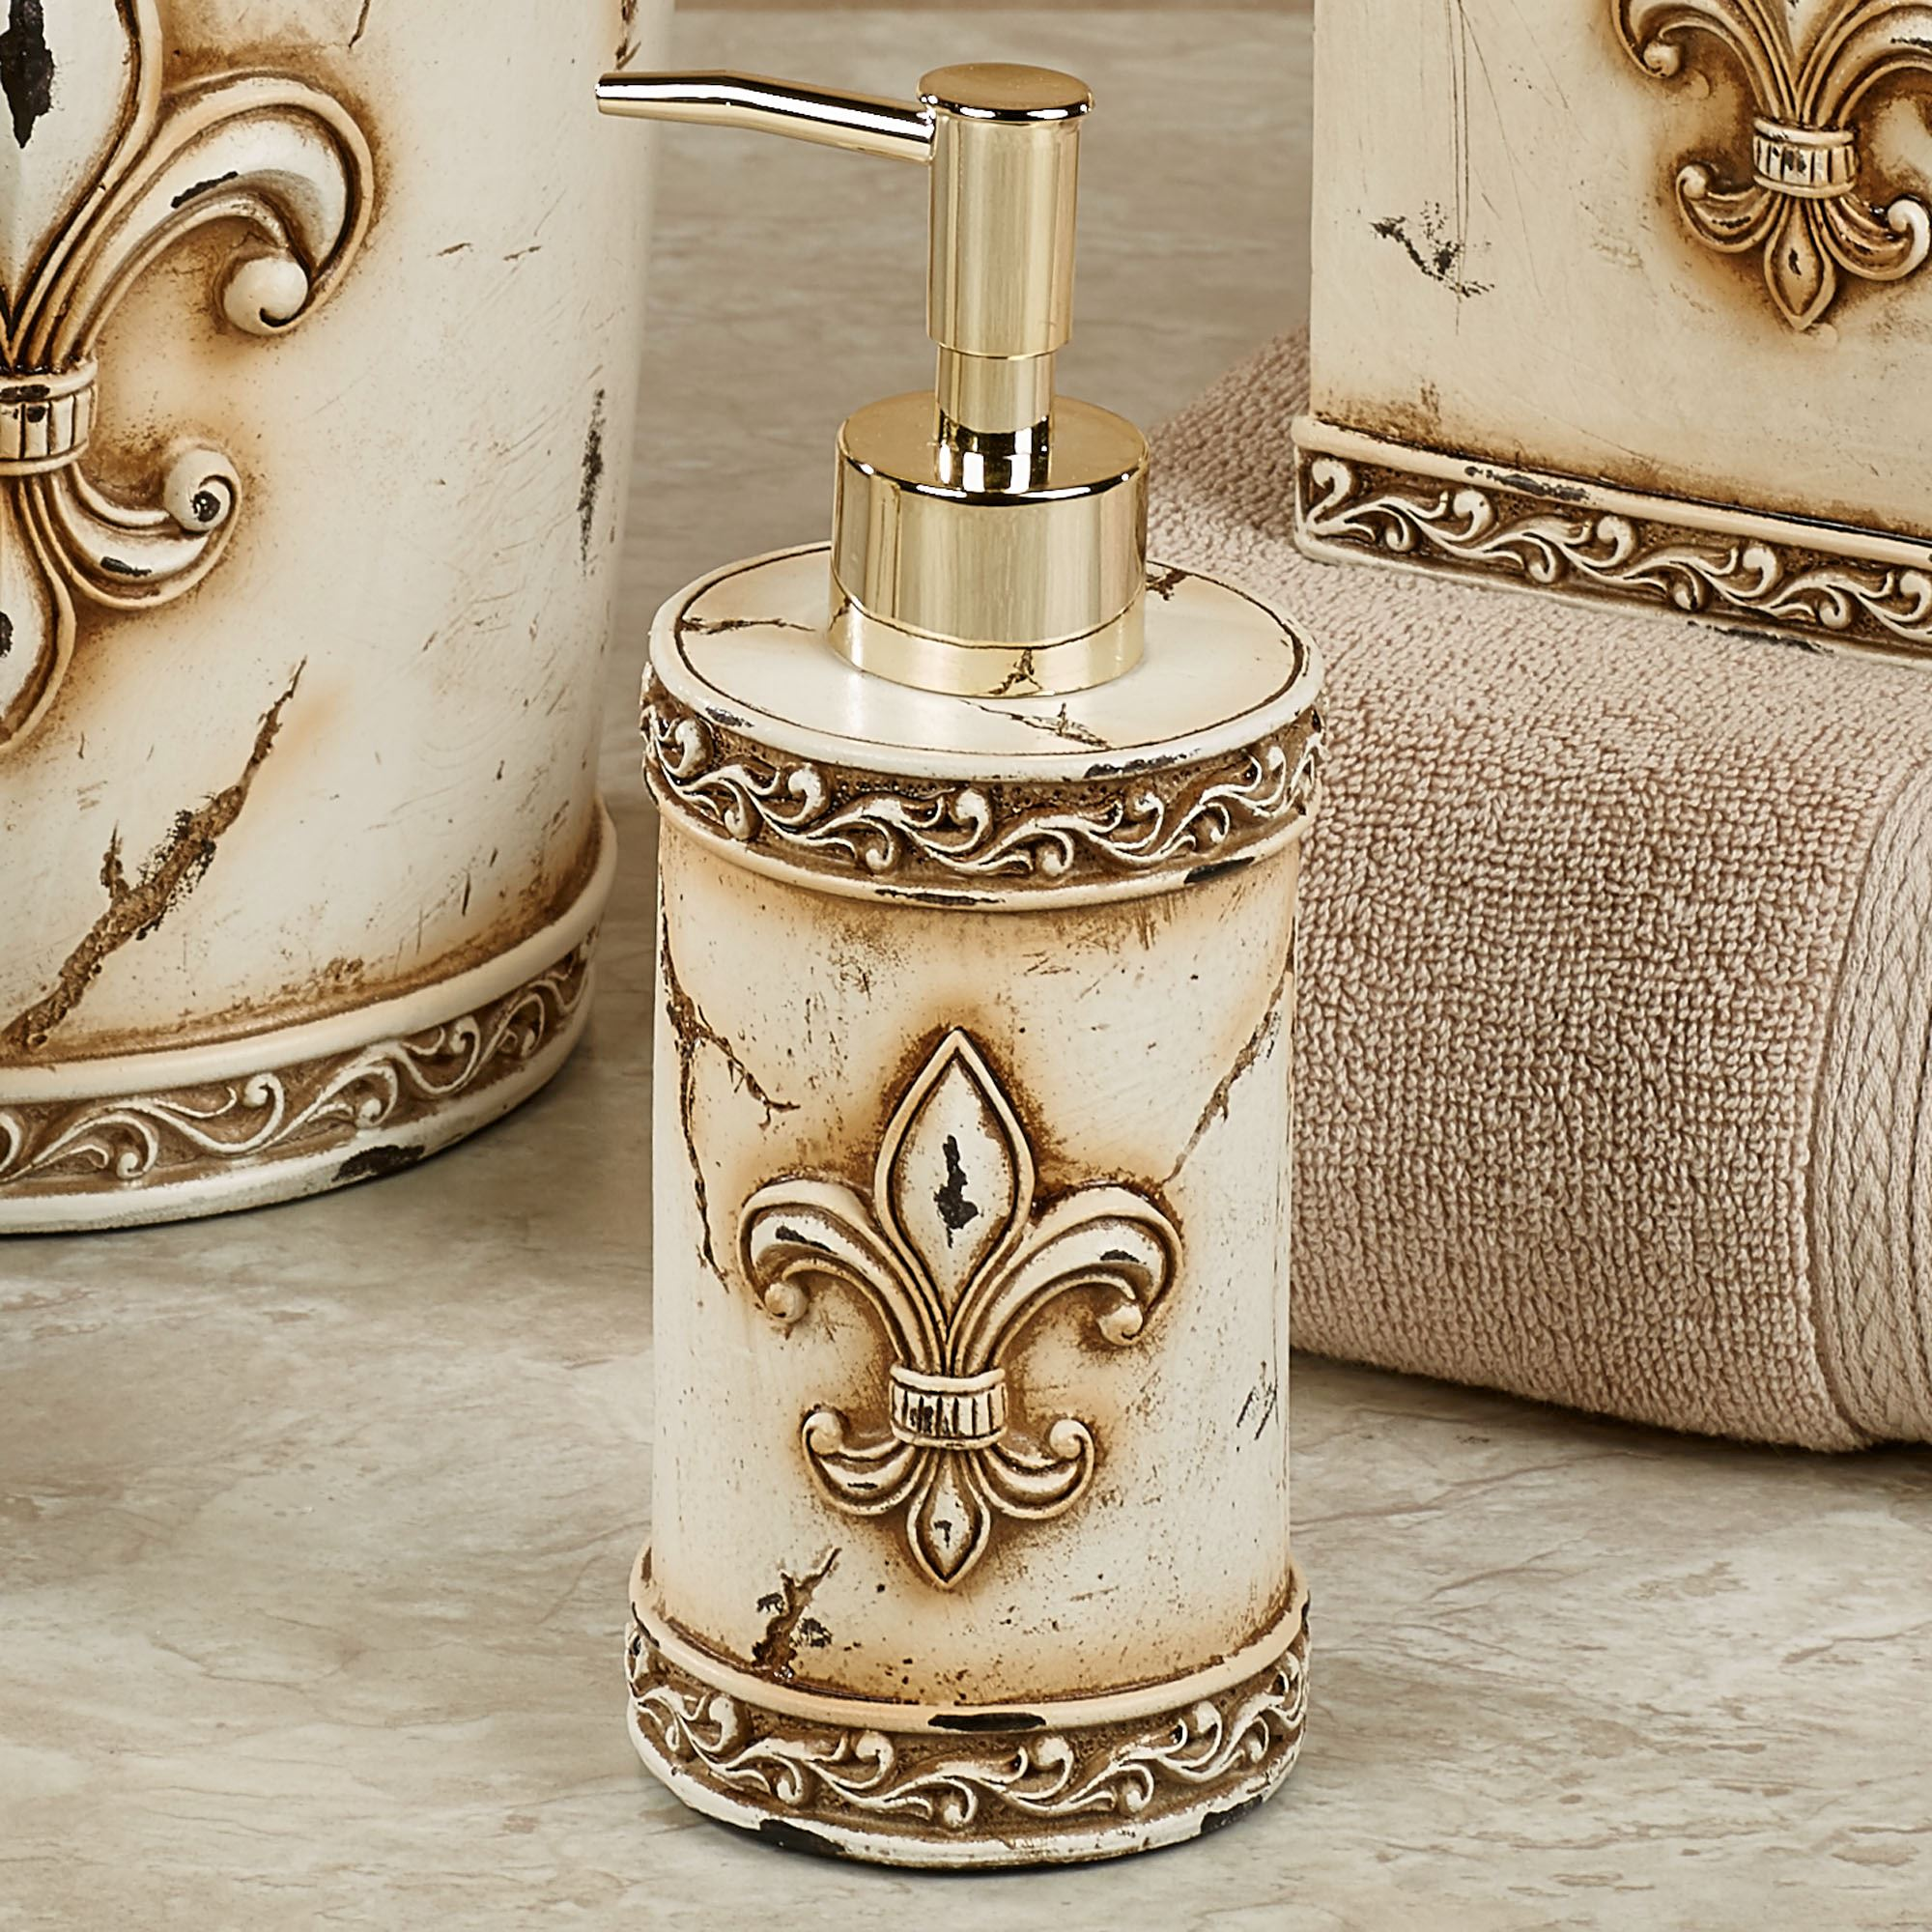 Fleur De Lis Bathroom Set. Aged Stone Fleur De Lis Bath Accessories Aged Stone Lotion Soap Dispenser Click To Expand  C2 B7 Aged Stone Lotion Soap Dispenser